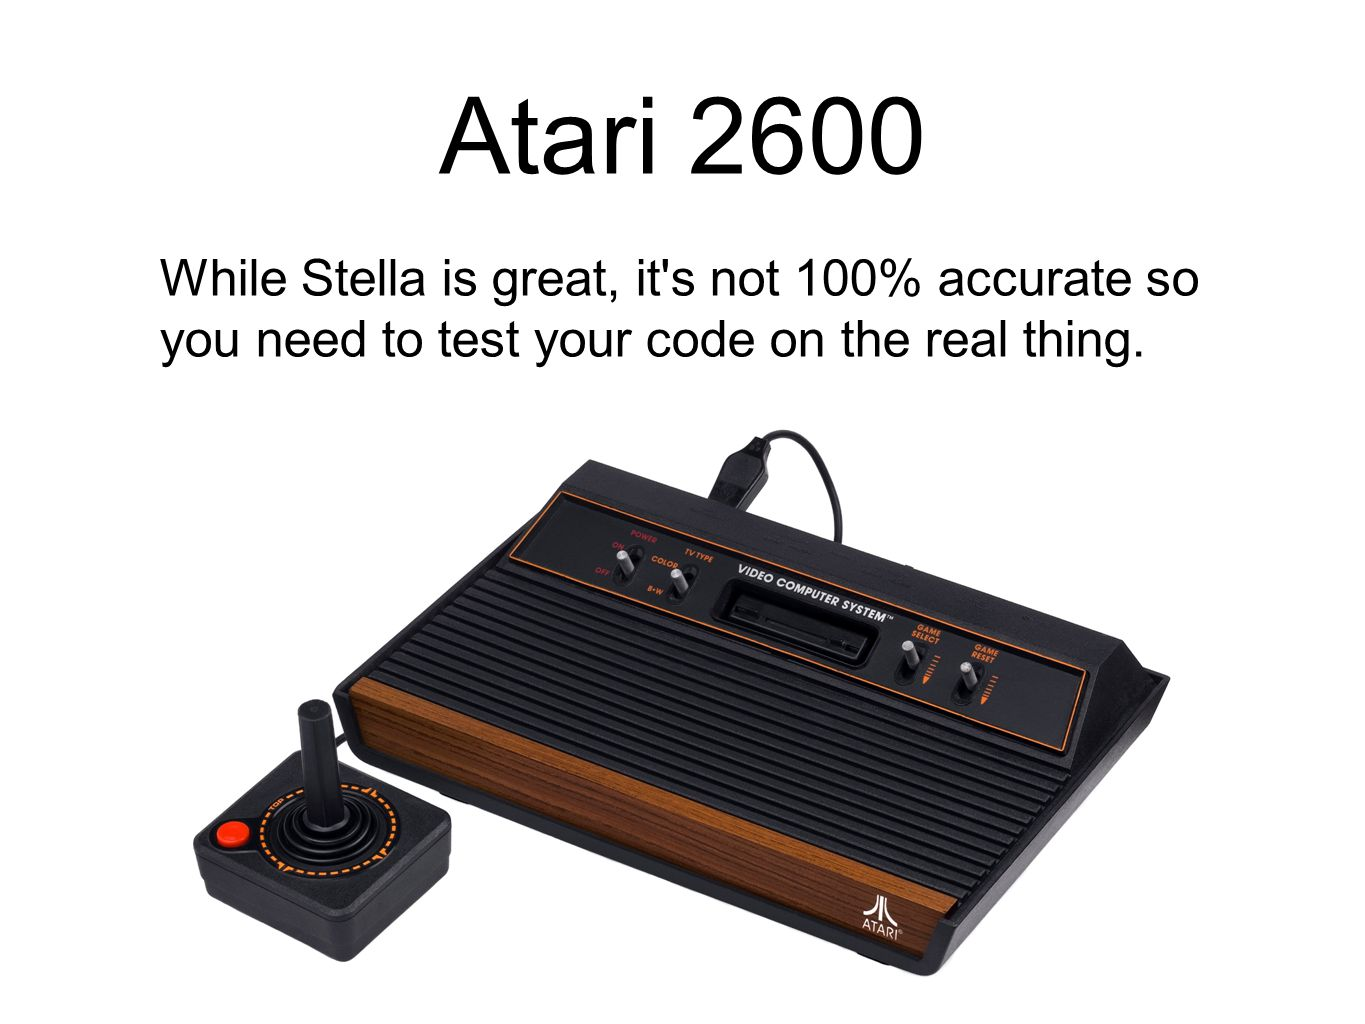 Atari 2600 While Stella is great, it s not 100% accurate so you need to test your code on the real thing.